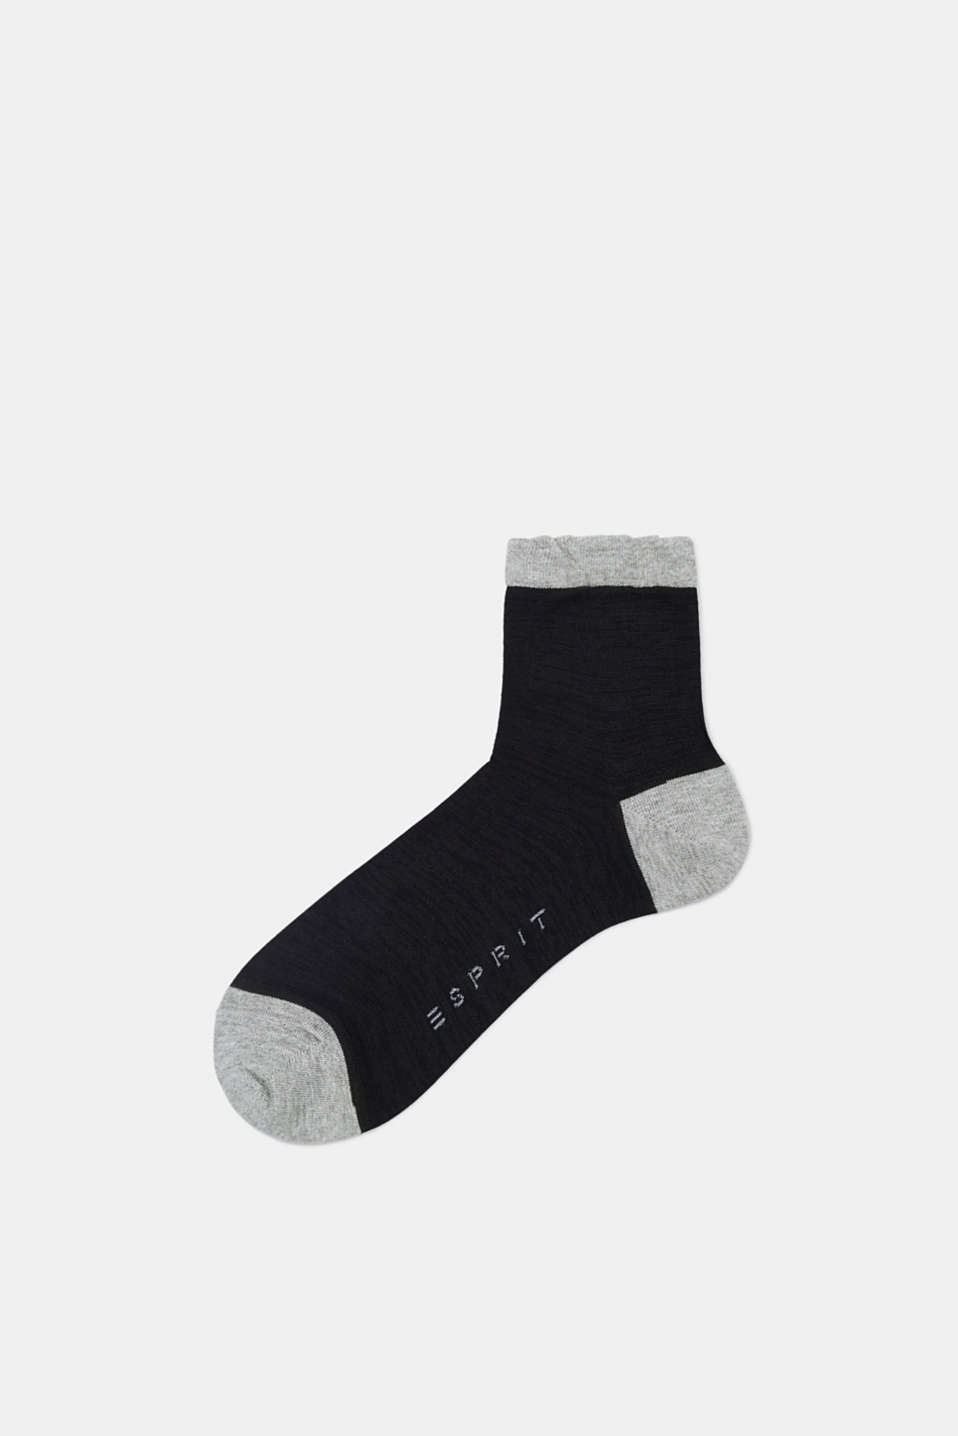 Esprit - Semi-sheer socks with frilled hems